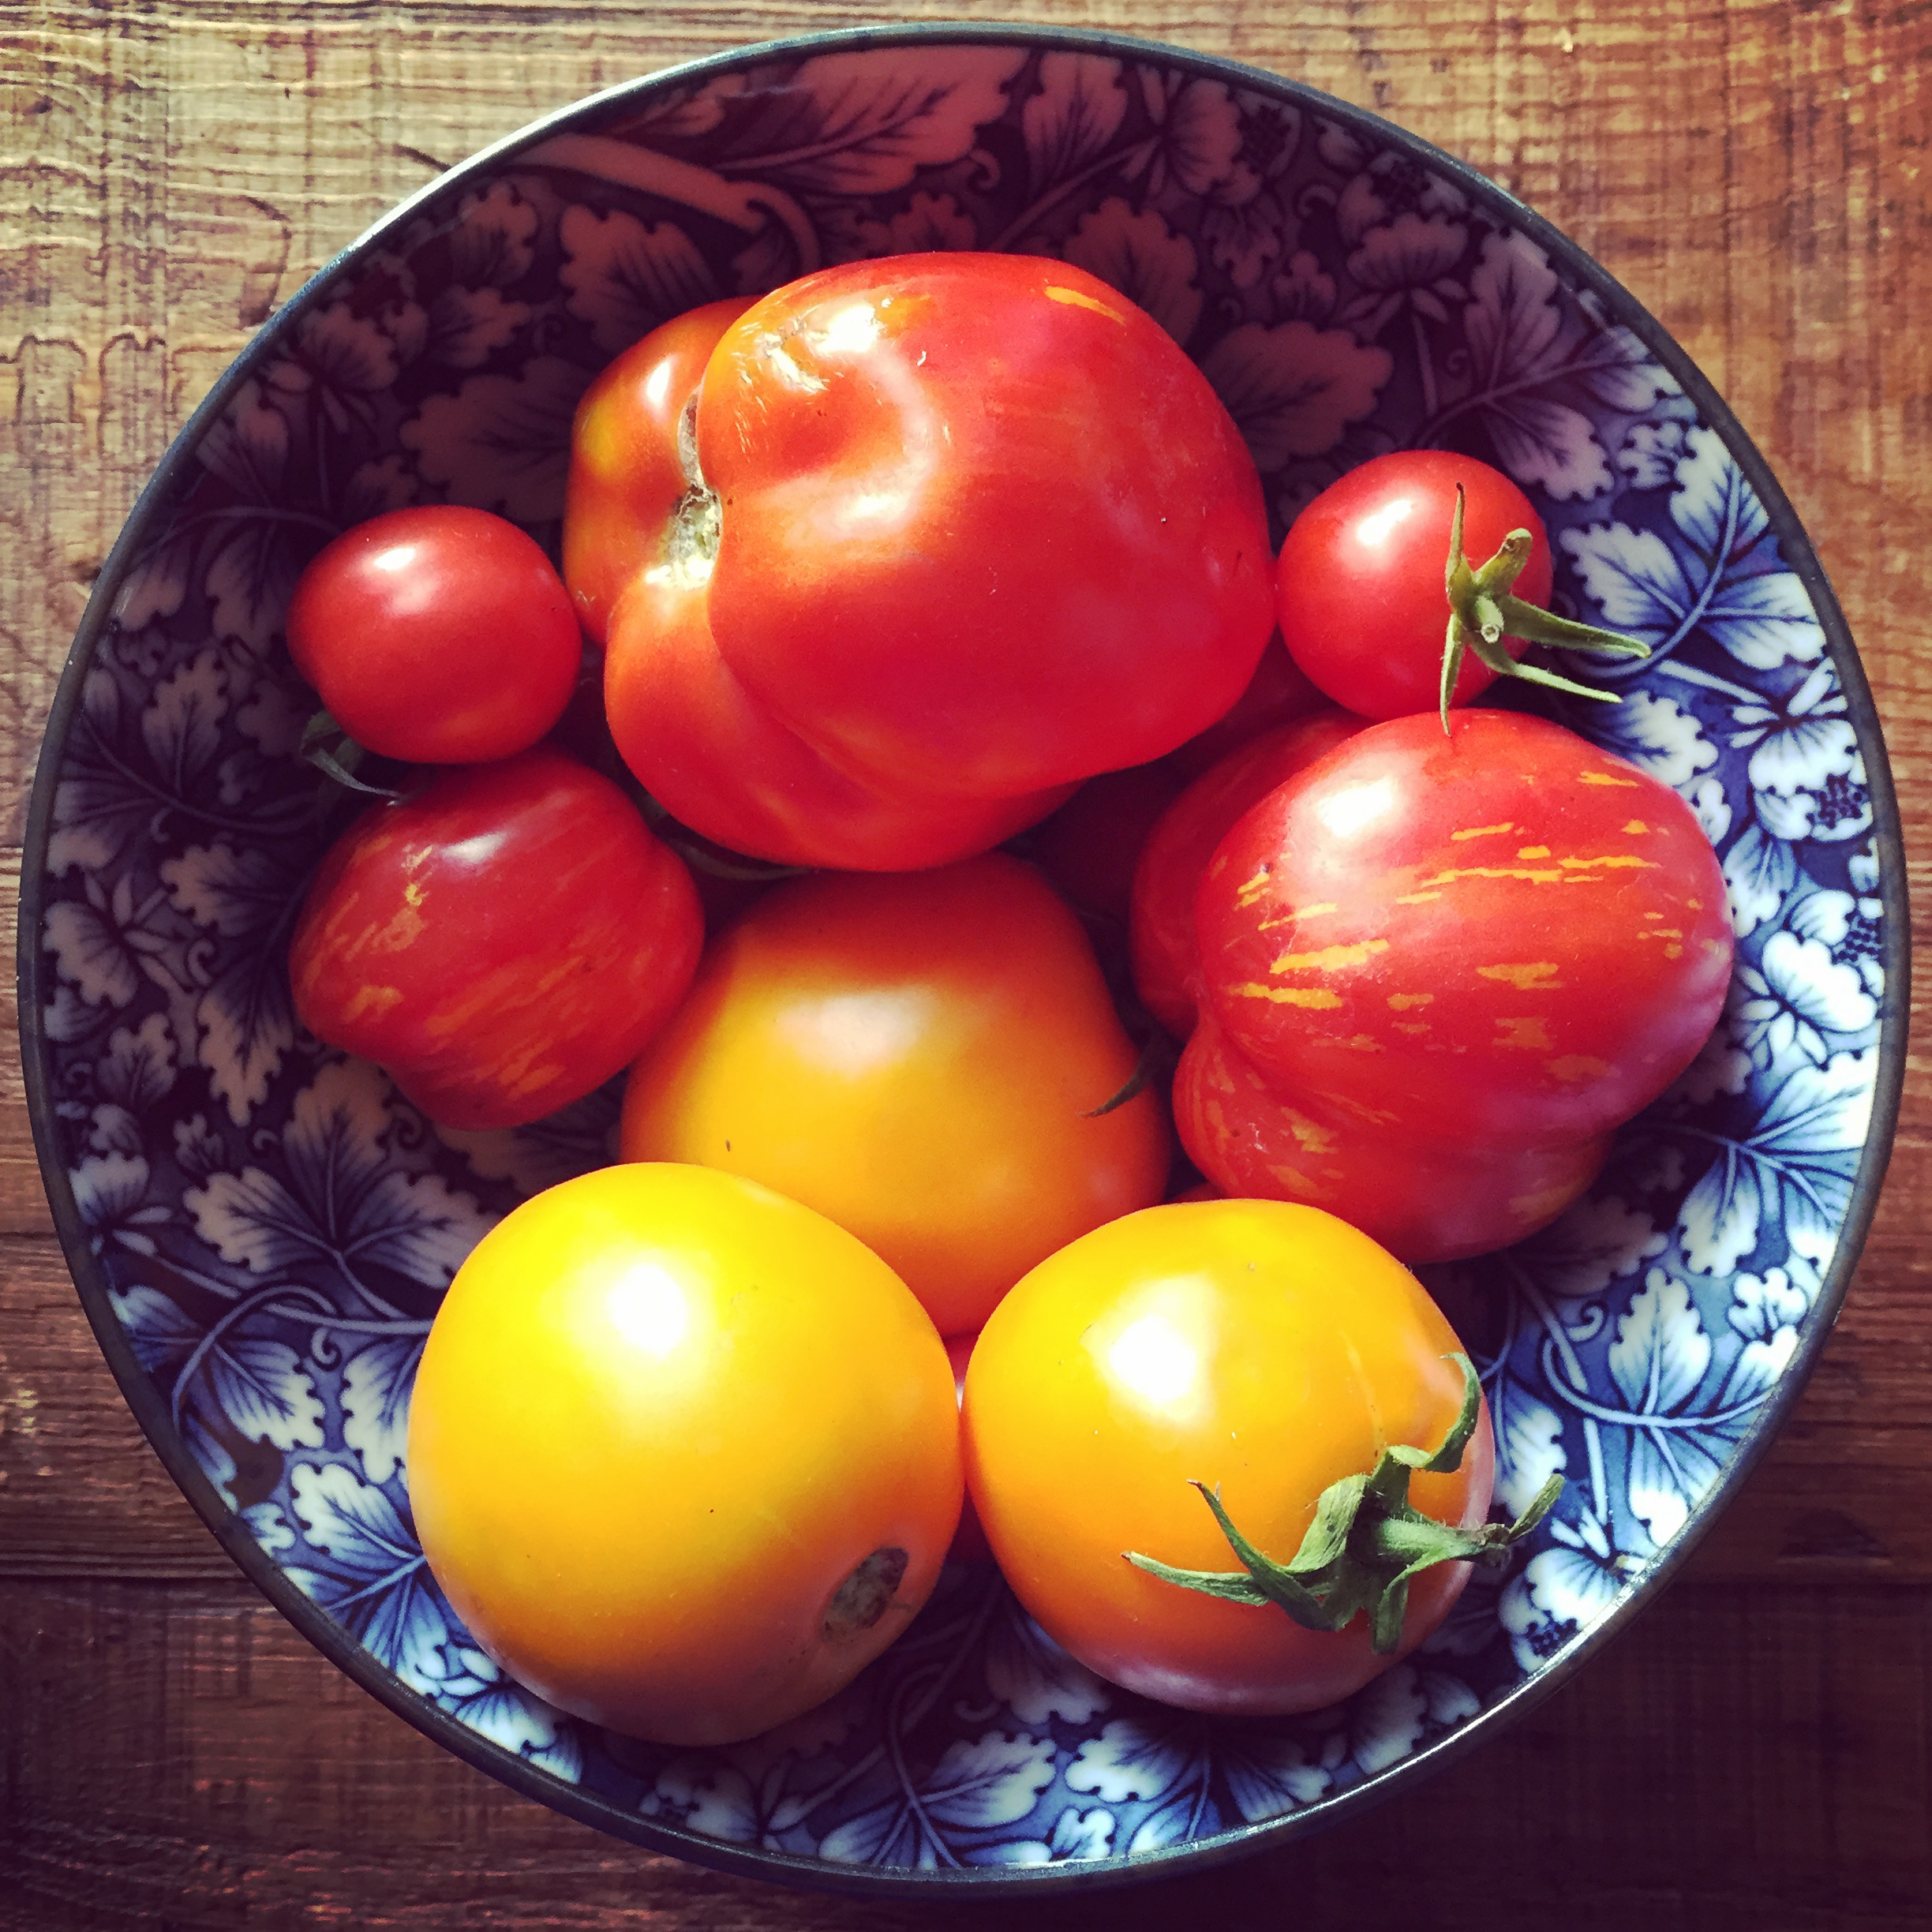 Organic tomatoes from our garden.